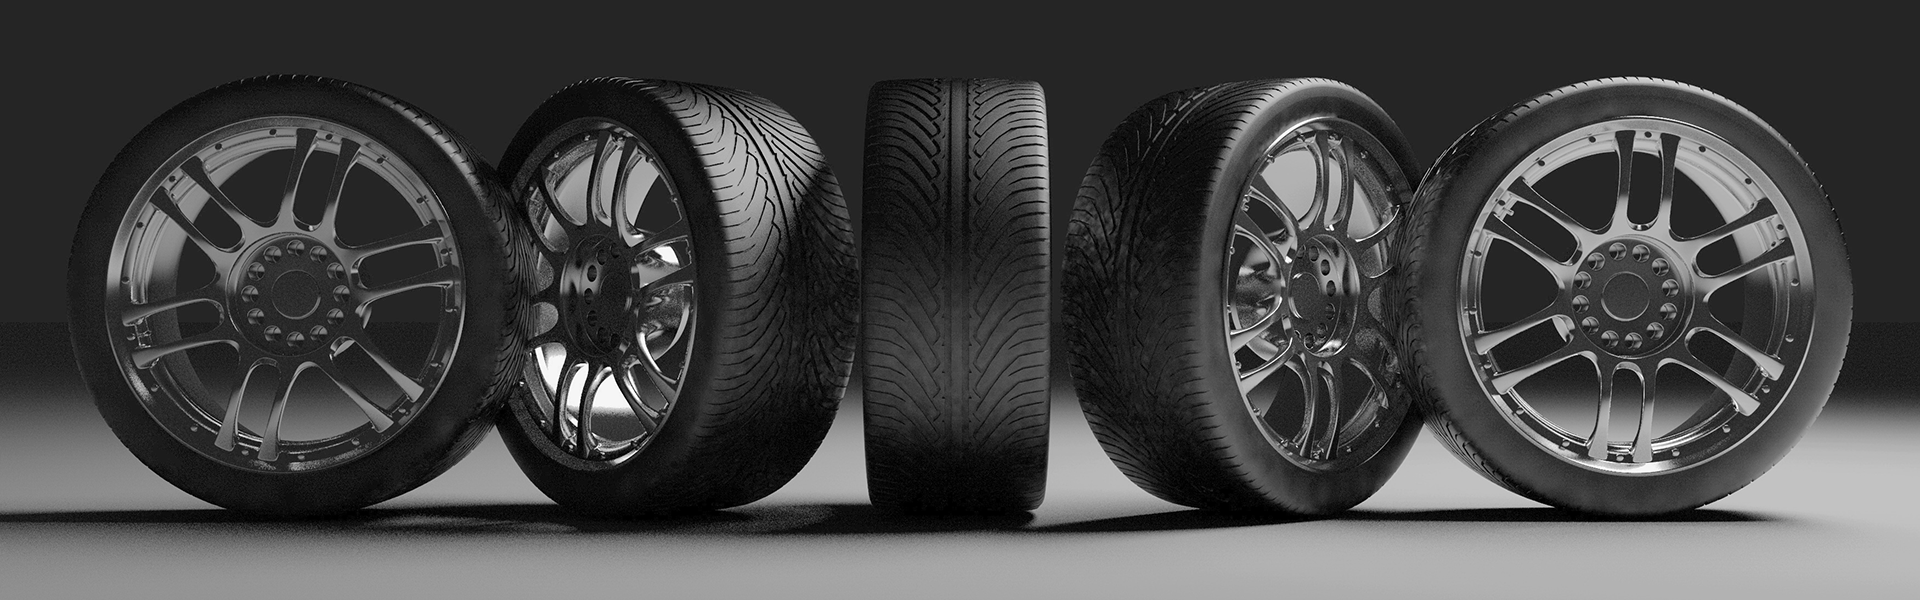 Service - Tires in a Row